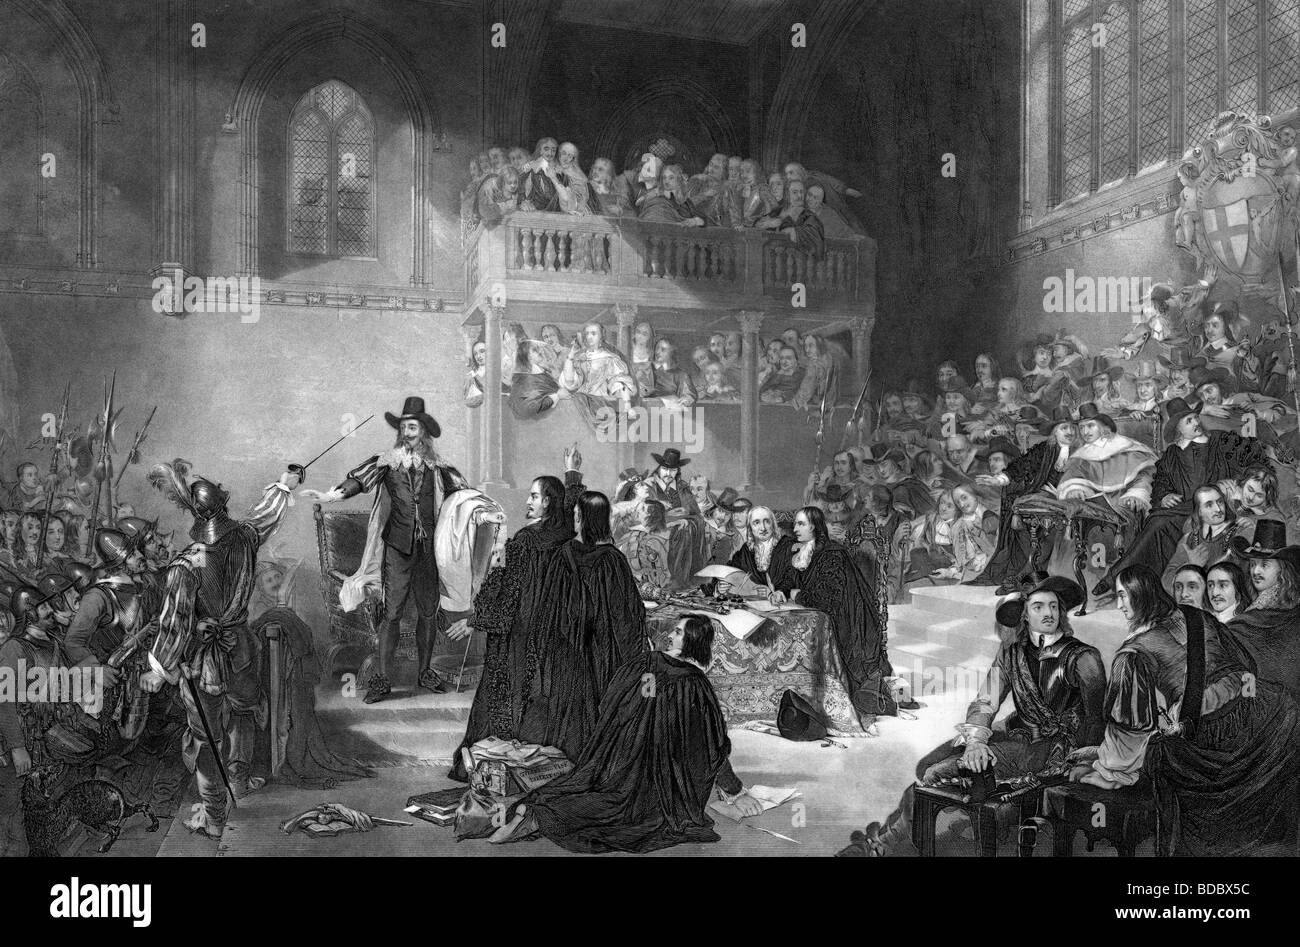 the trial of king charles If the king refused to recognise the court, and crucially refused to declare his guilt or that he was not0guilty, the trial would have to end with the king found guilty without evidence being heard to justify their actions, to proceed with proving that charles was a tyrant, a man who had brought war on his own people, a traitor to his people.